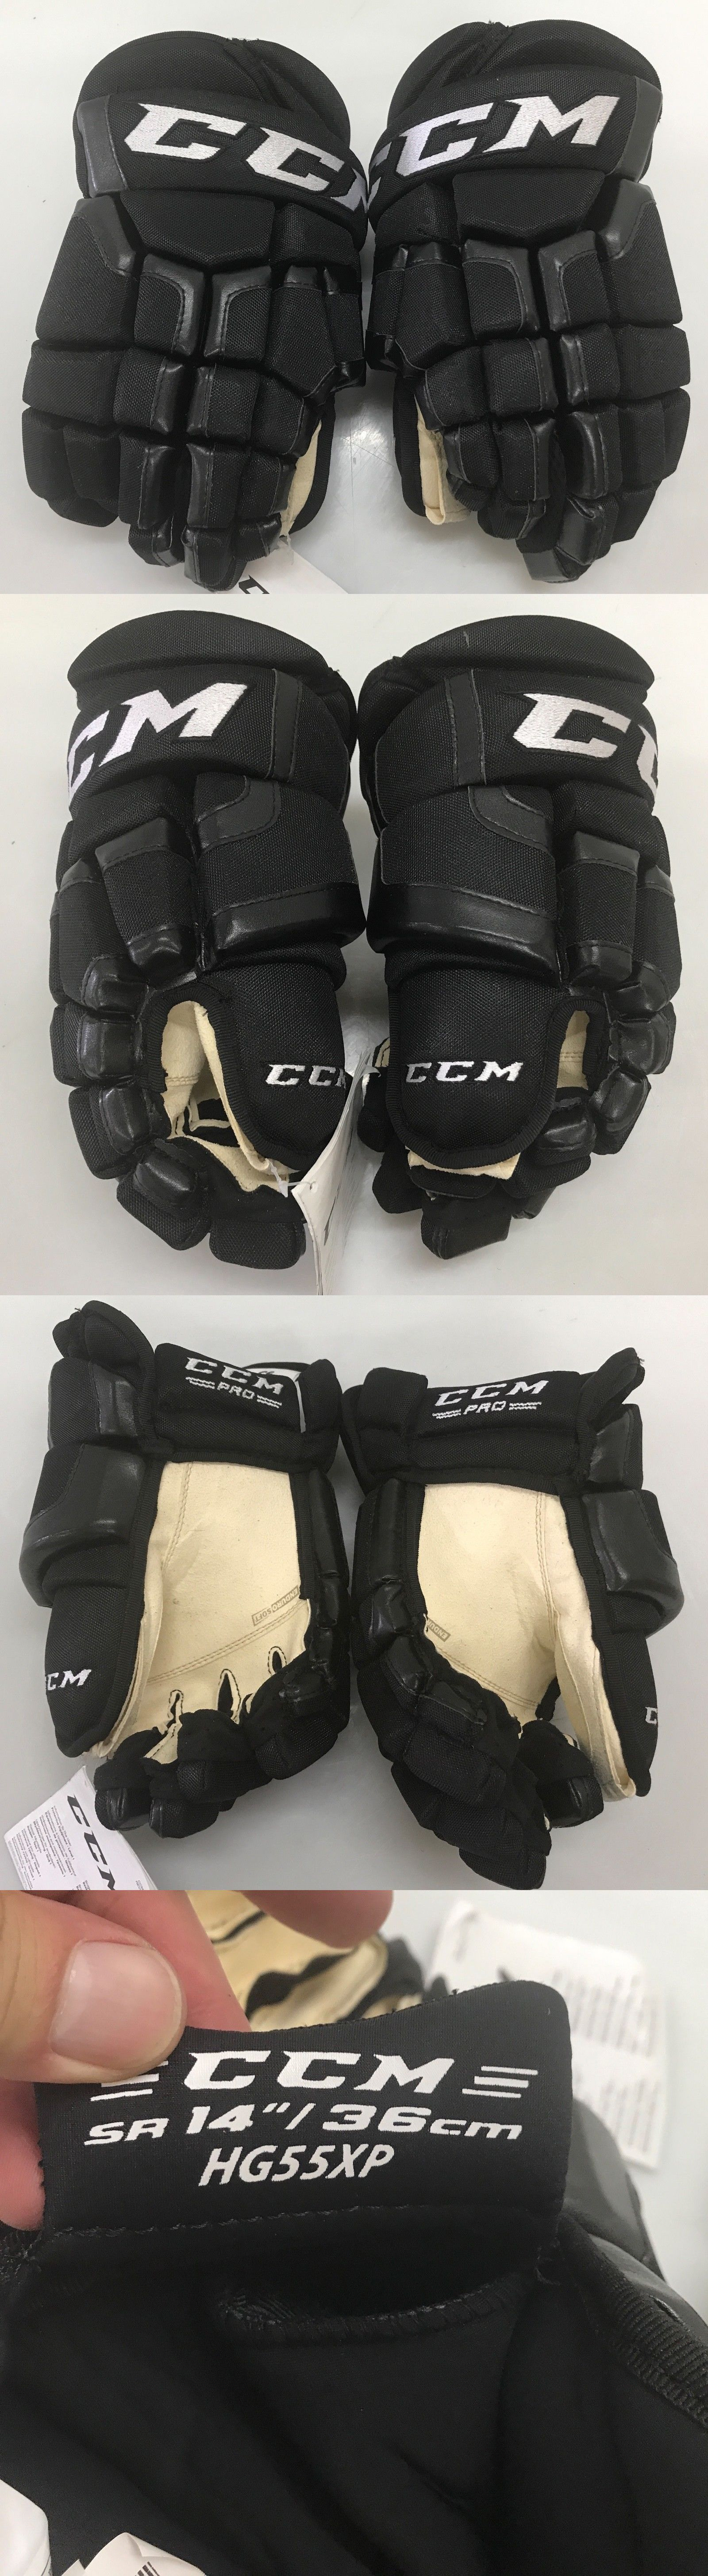 4171d709c14 Clothing and Protective Gear 20855  Ccm Hg55 Xp Pro Stock Hockey Gloves 14  La Kings 6778 -  BUY IT NOW ONLY   100 on eBay!